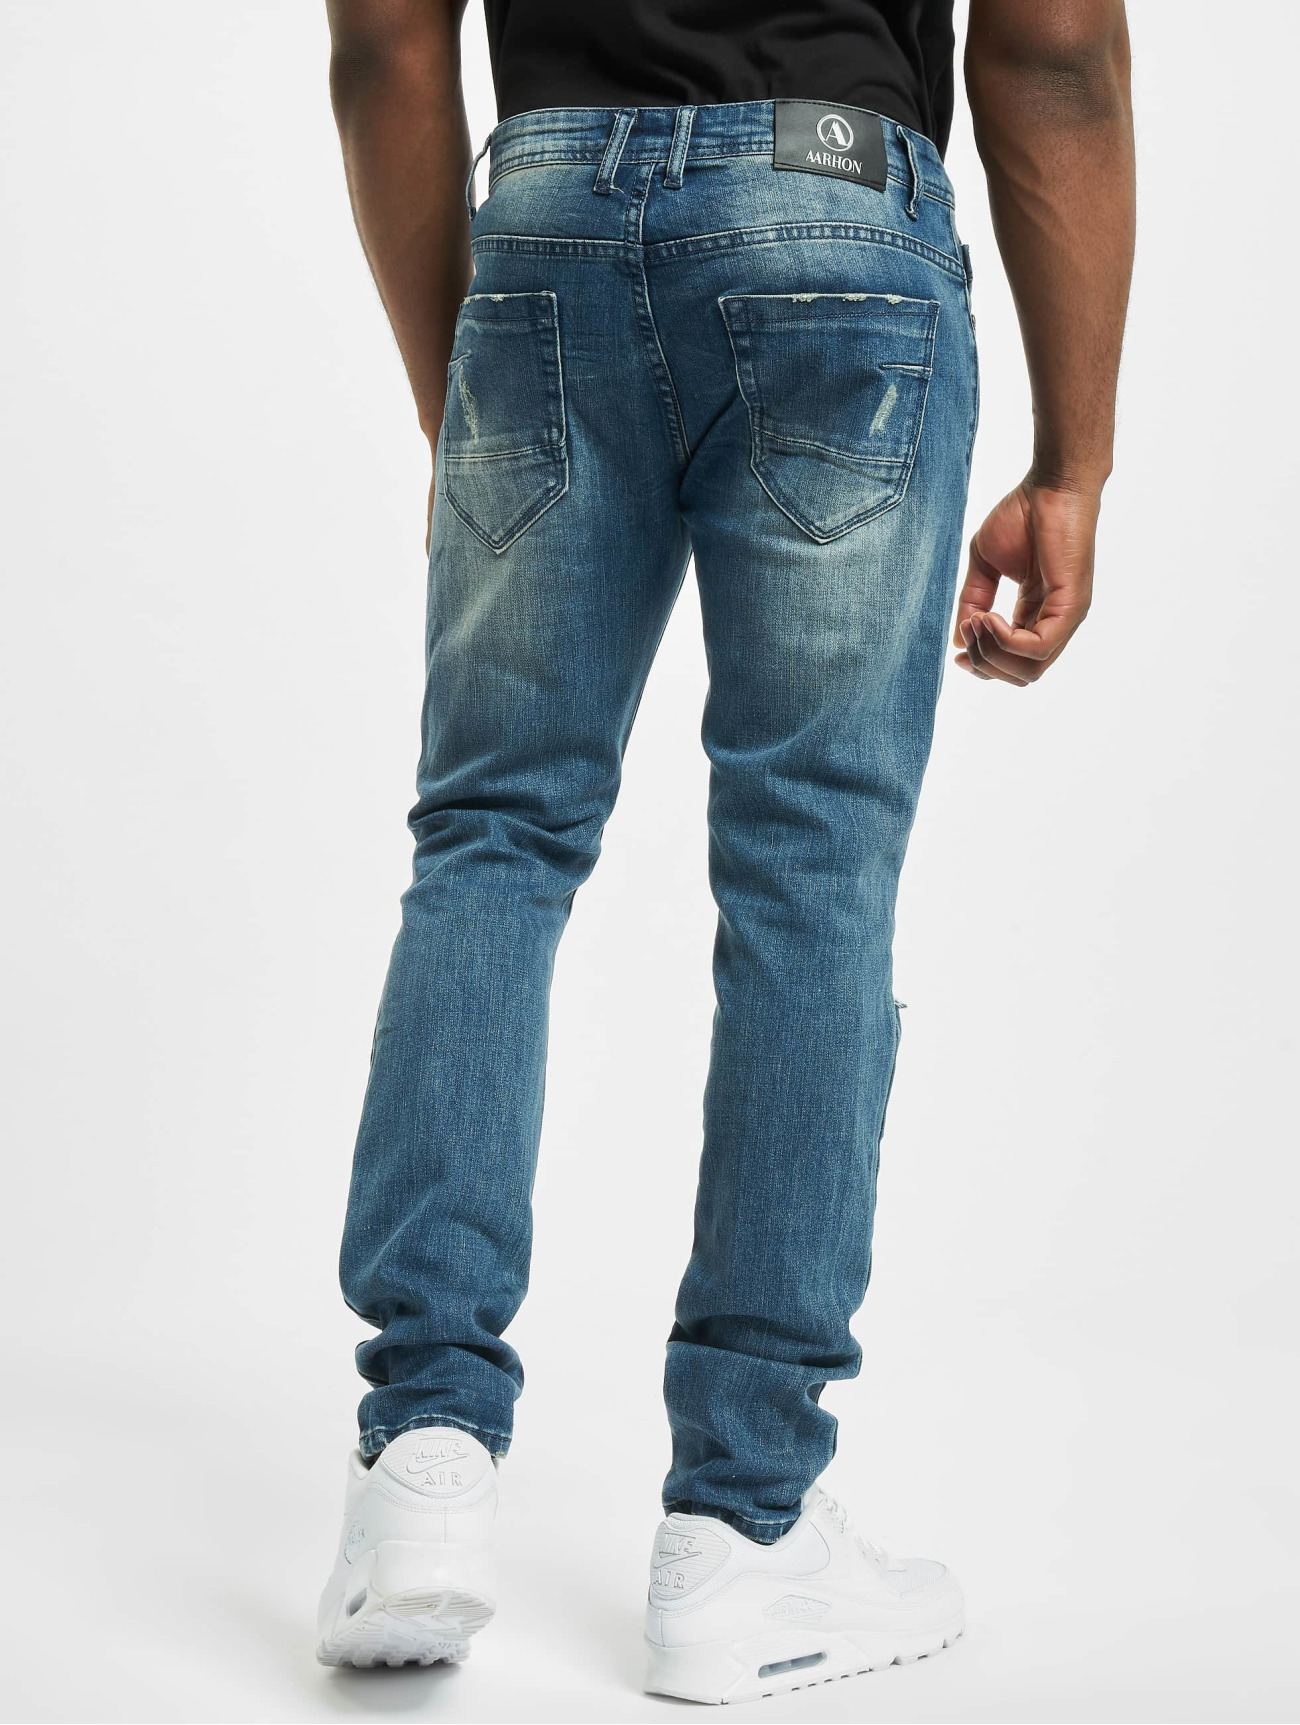 Aarhon  Cuts Out  bleu Homme Jean skinny  773684 Homme Jeans